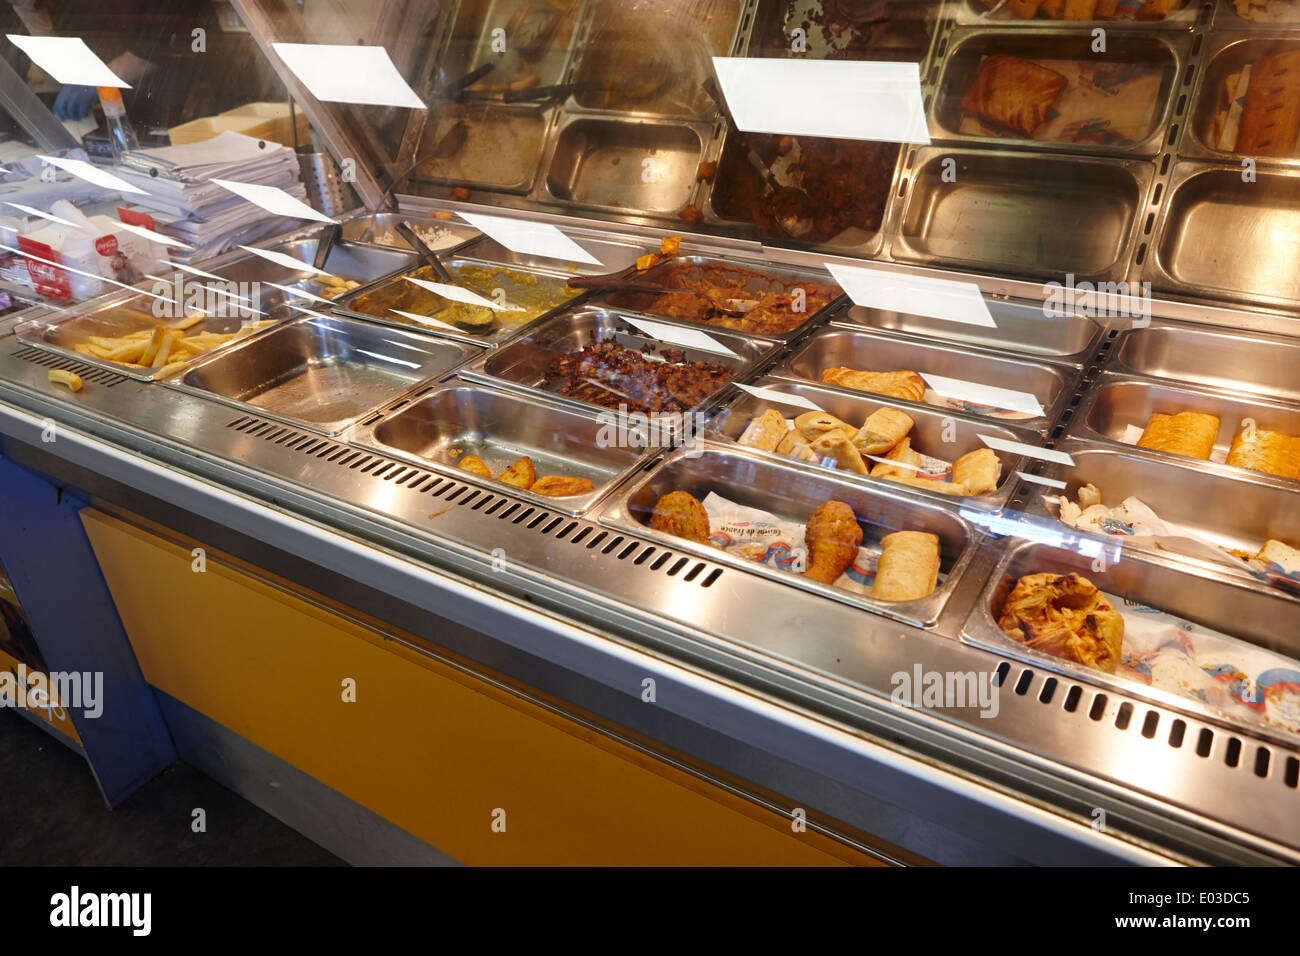 hot food deli counter in a filling station convenience store in northern ireland - Stock Image